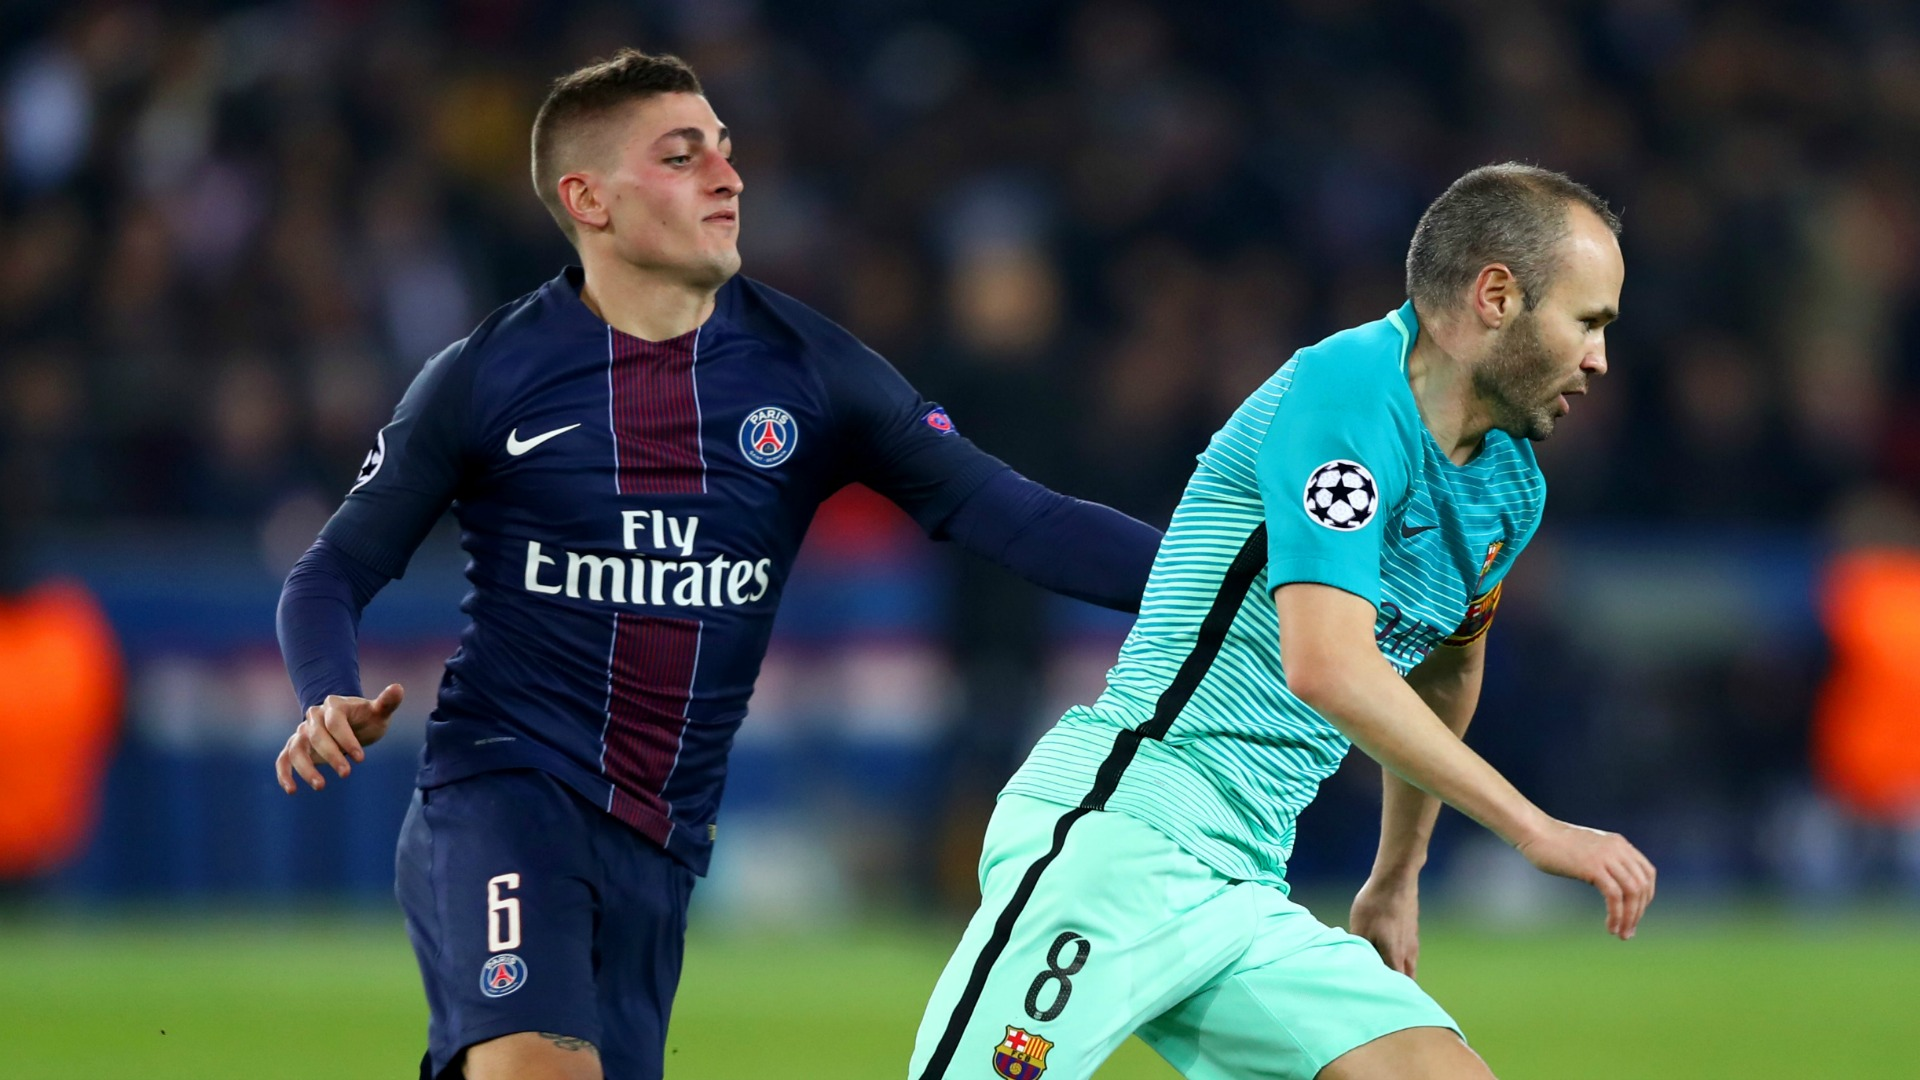 Retroscena Verratti: